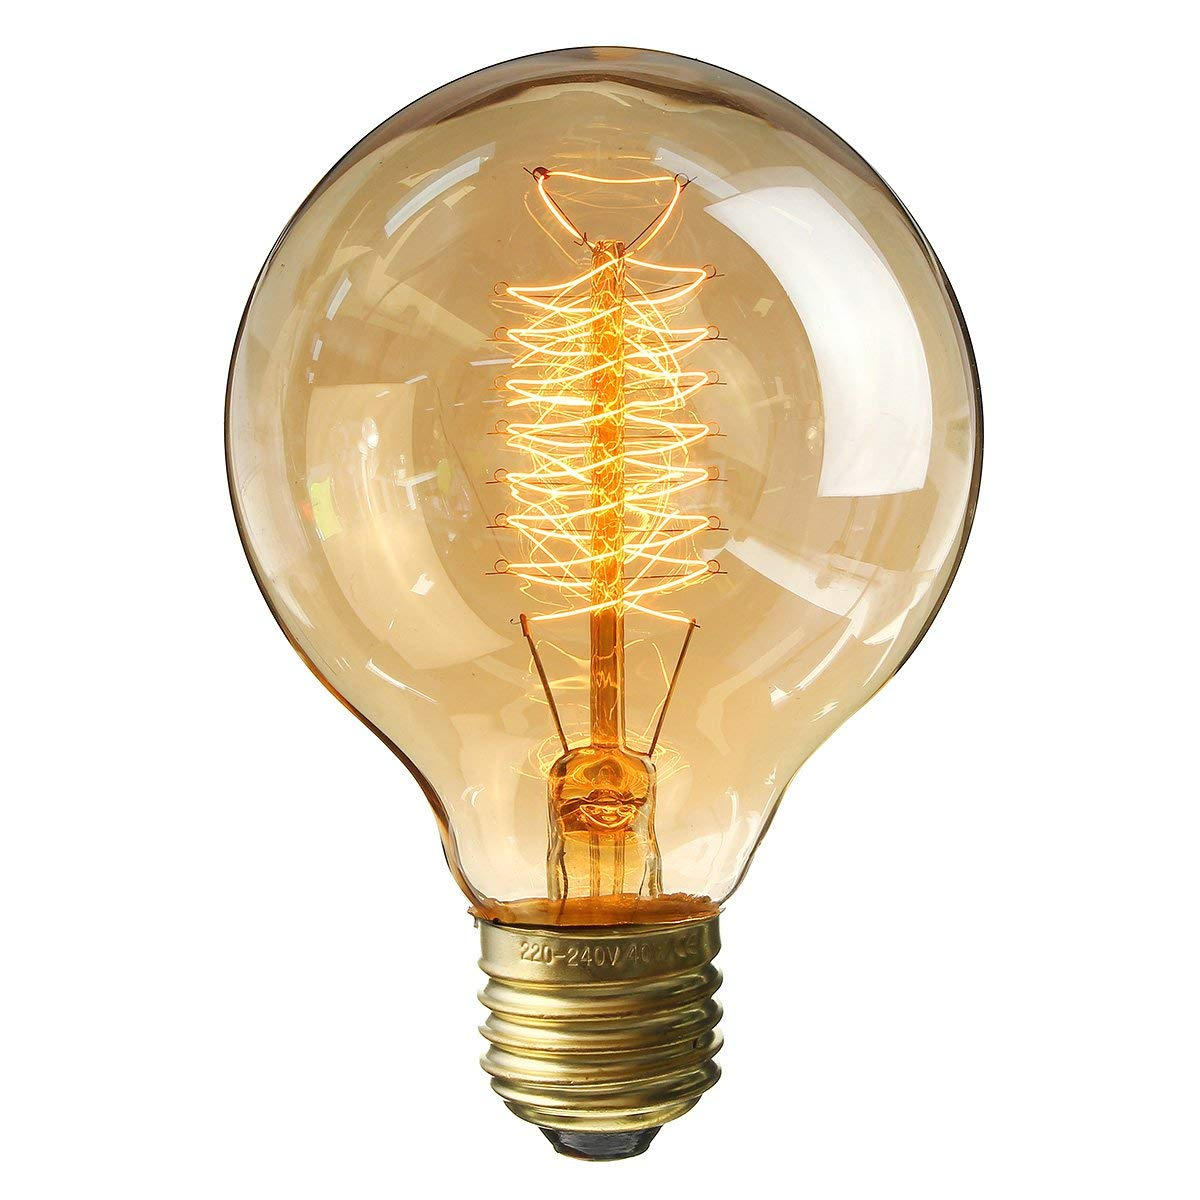 Ampoule E27 Filament Incandescente 40w Blanc Chaud: Top Ampoules Incandescentes Selon Les Notes Amazon.fr